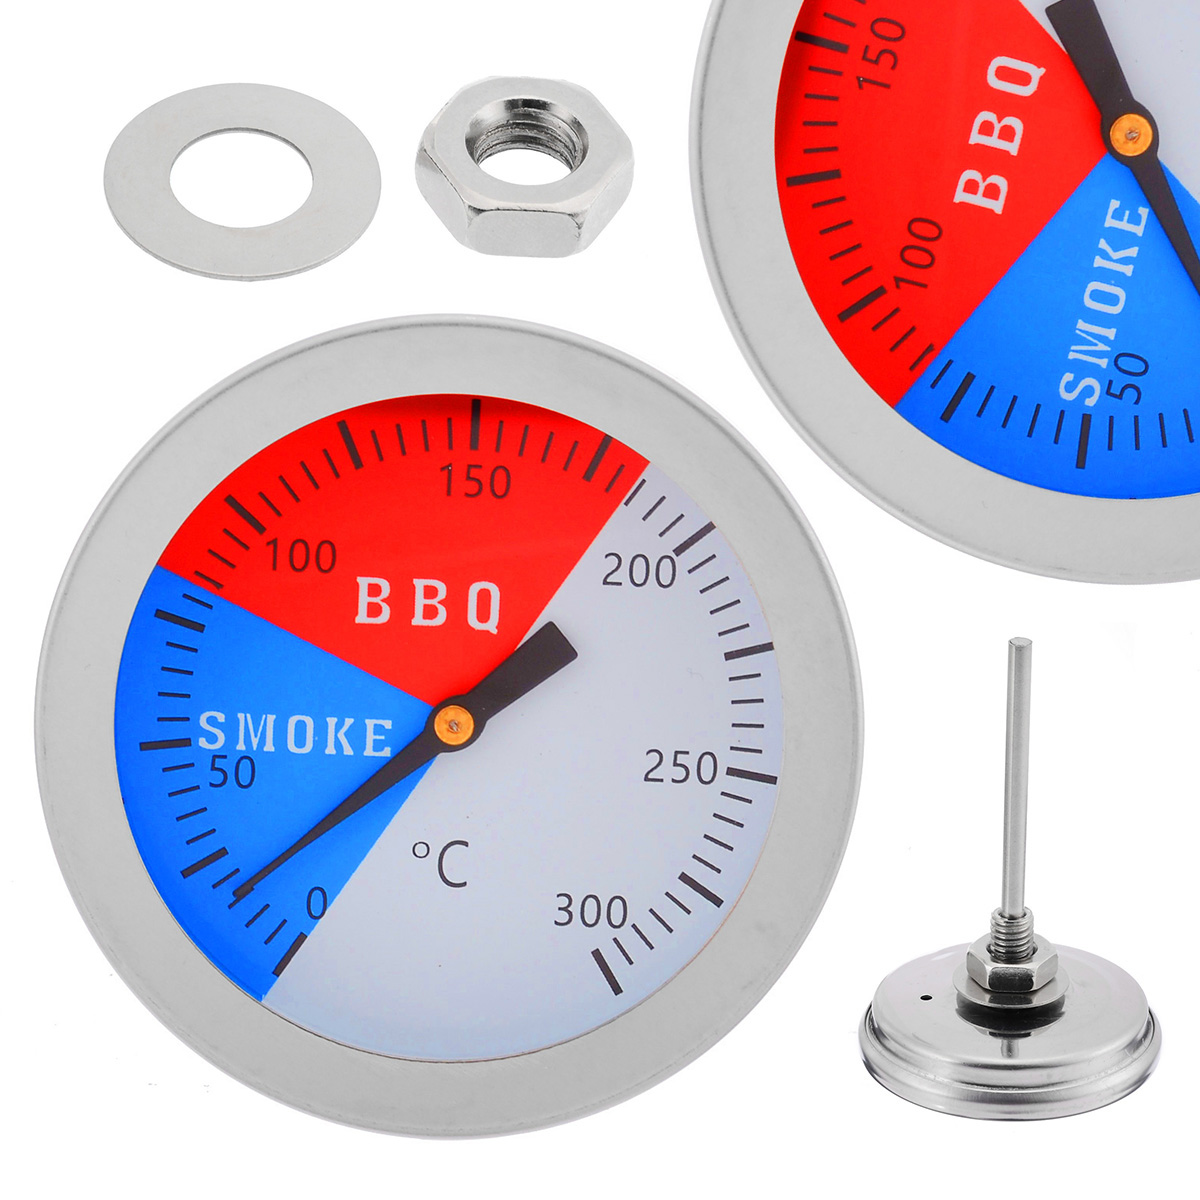 Stainless Steel Thermometer BBQ Smoker Grill Thermometers 300 Degrees Temperature Gauge Mayitr Barbecue Thermometer(China)